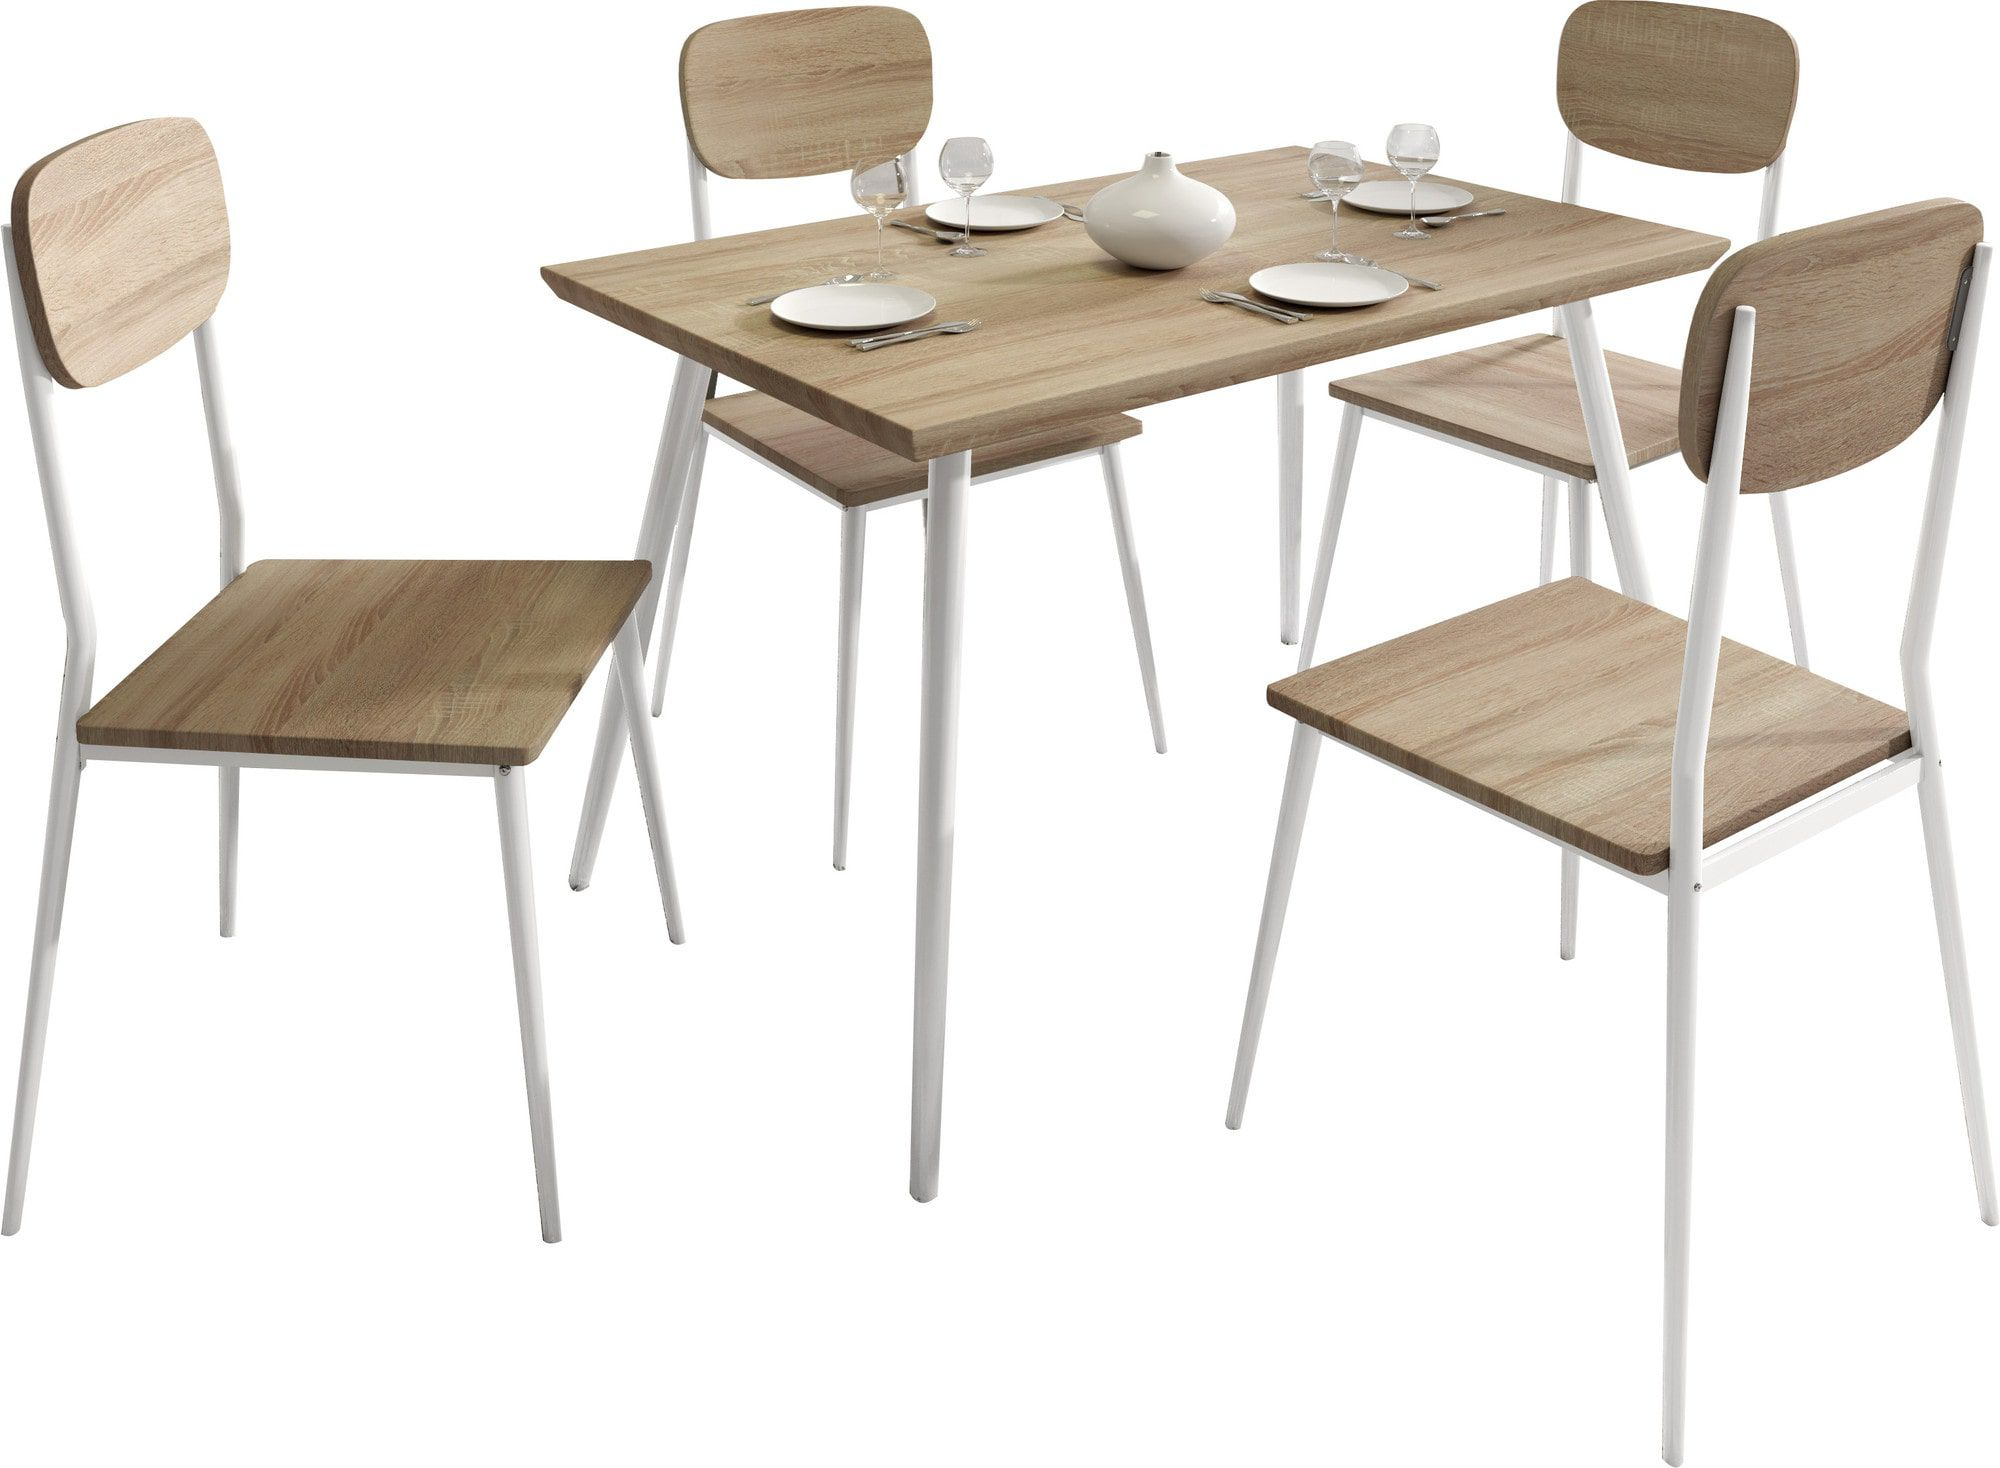 Comment assortir l ensemble table et chaise de sa salle - Ensemble table et chaise de salle a manger ...